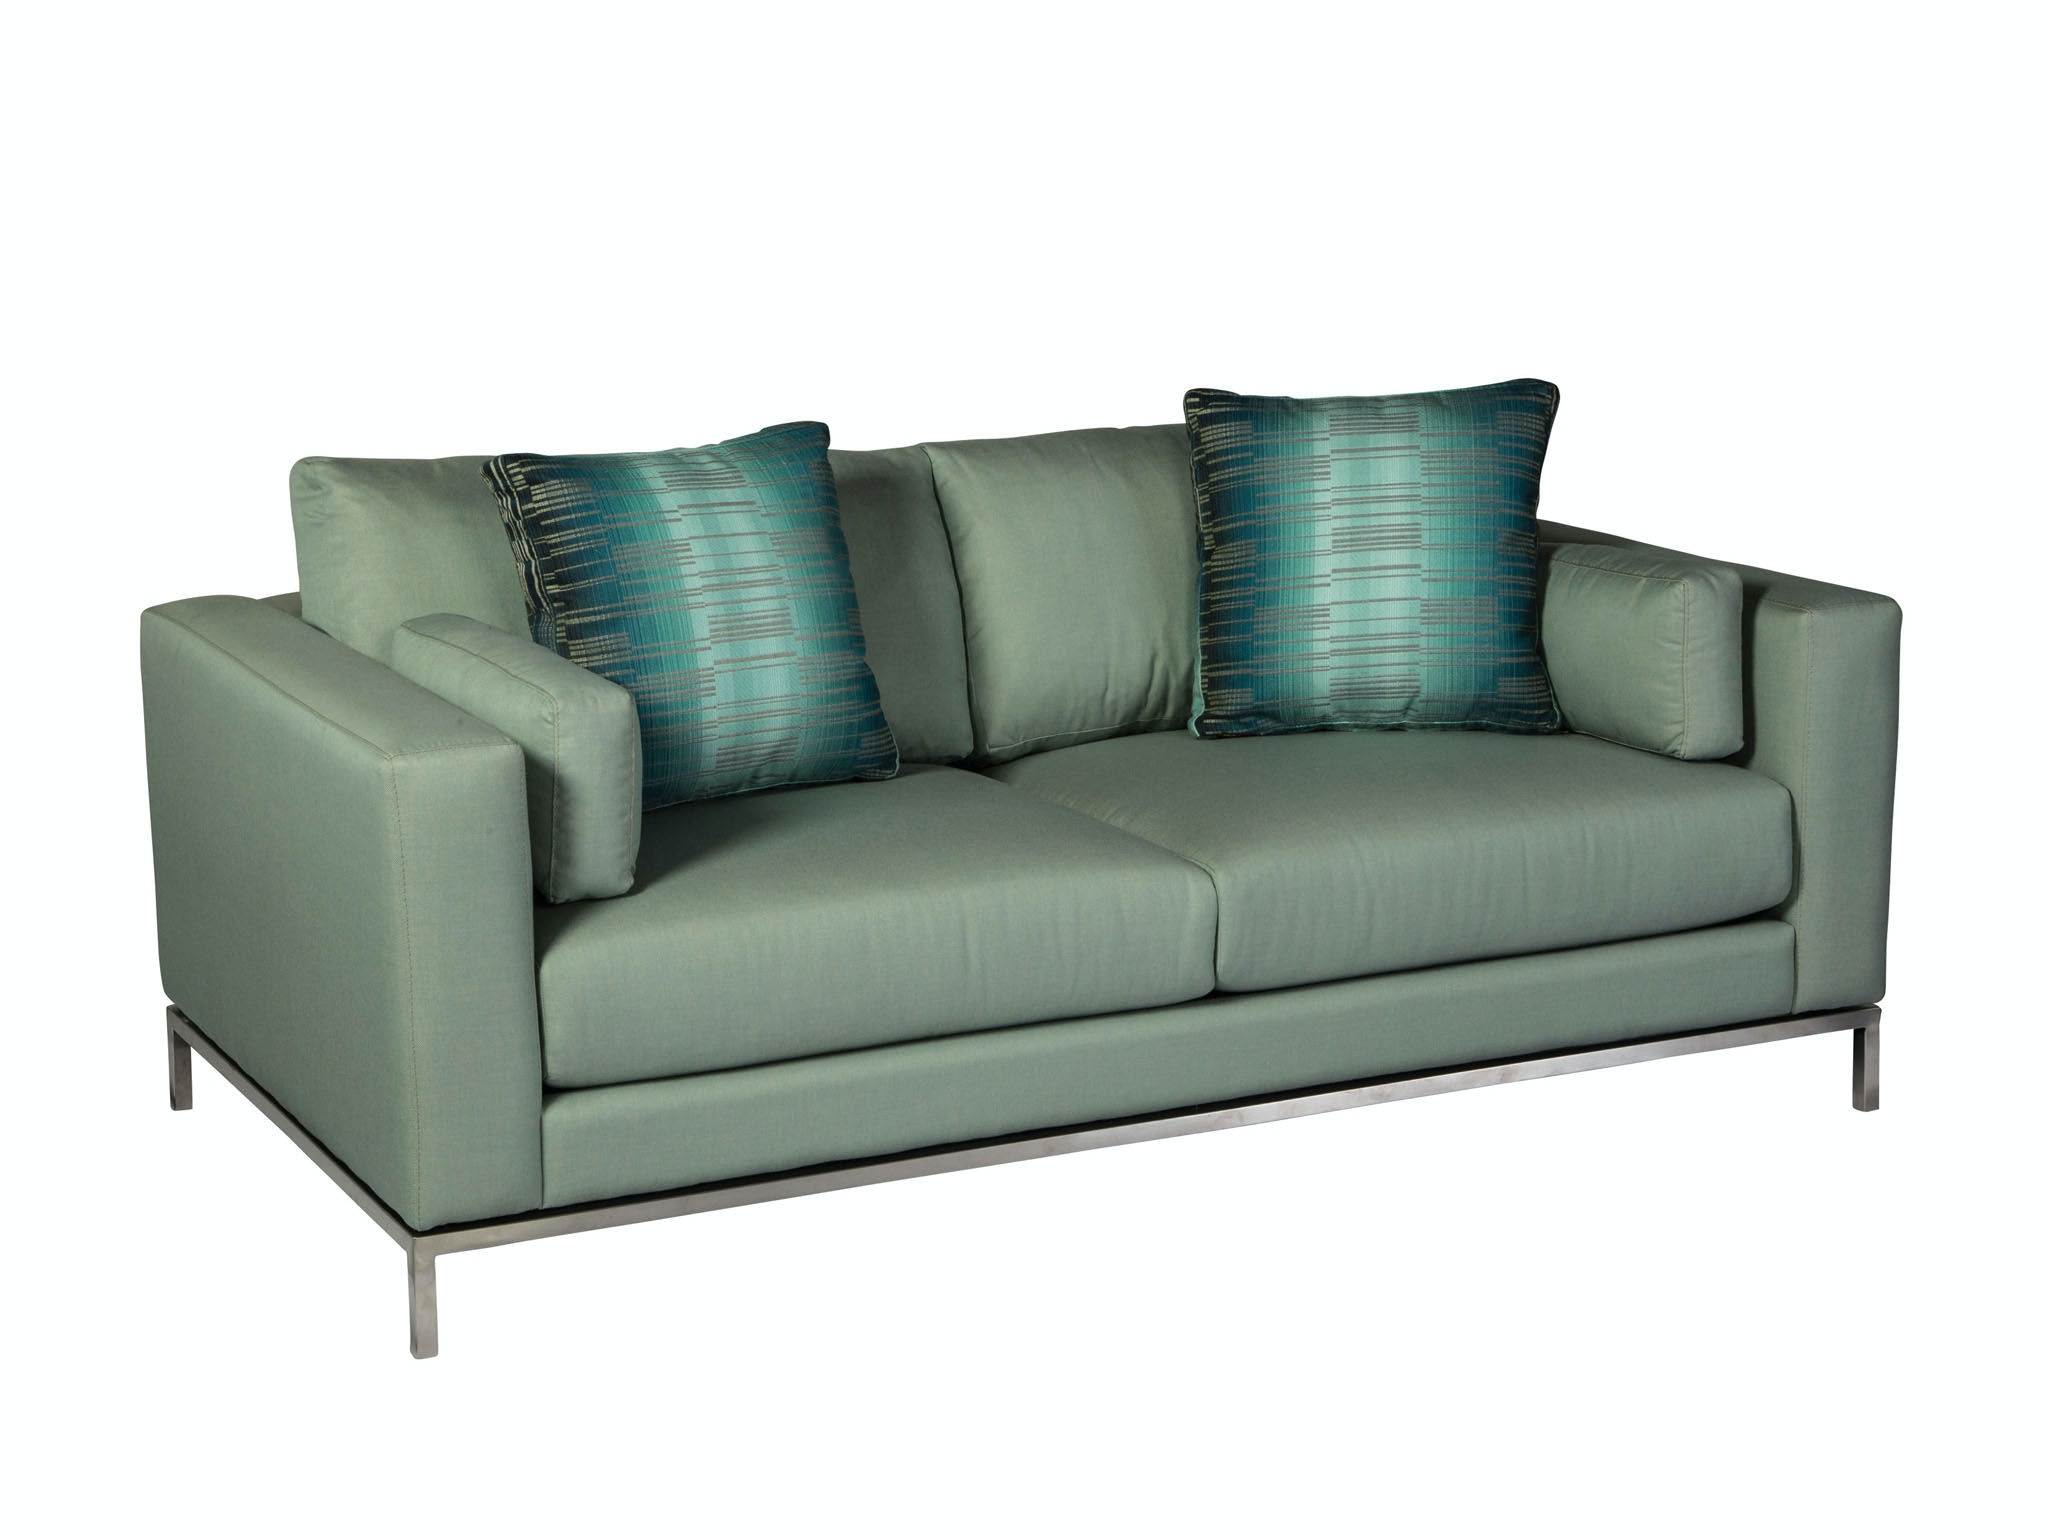 Sofa Mart Fort Wayne In Jonathan Louis International Living Room Sofa 34530  . Sofa Mart Fort Wayne ...